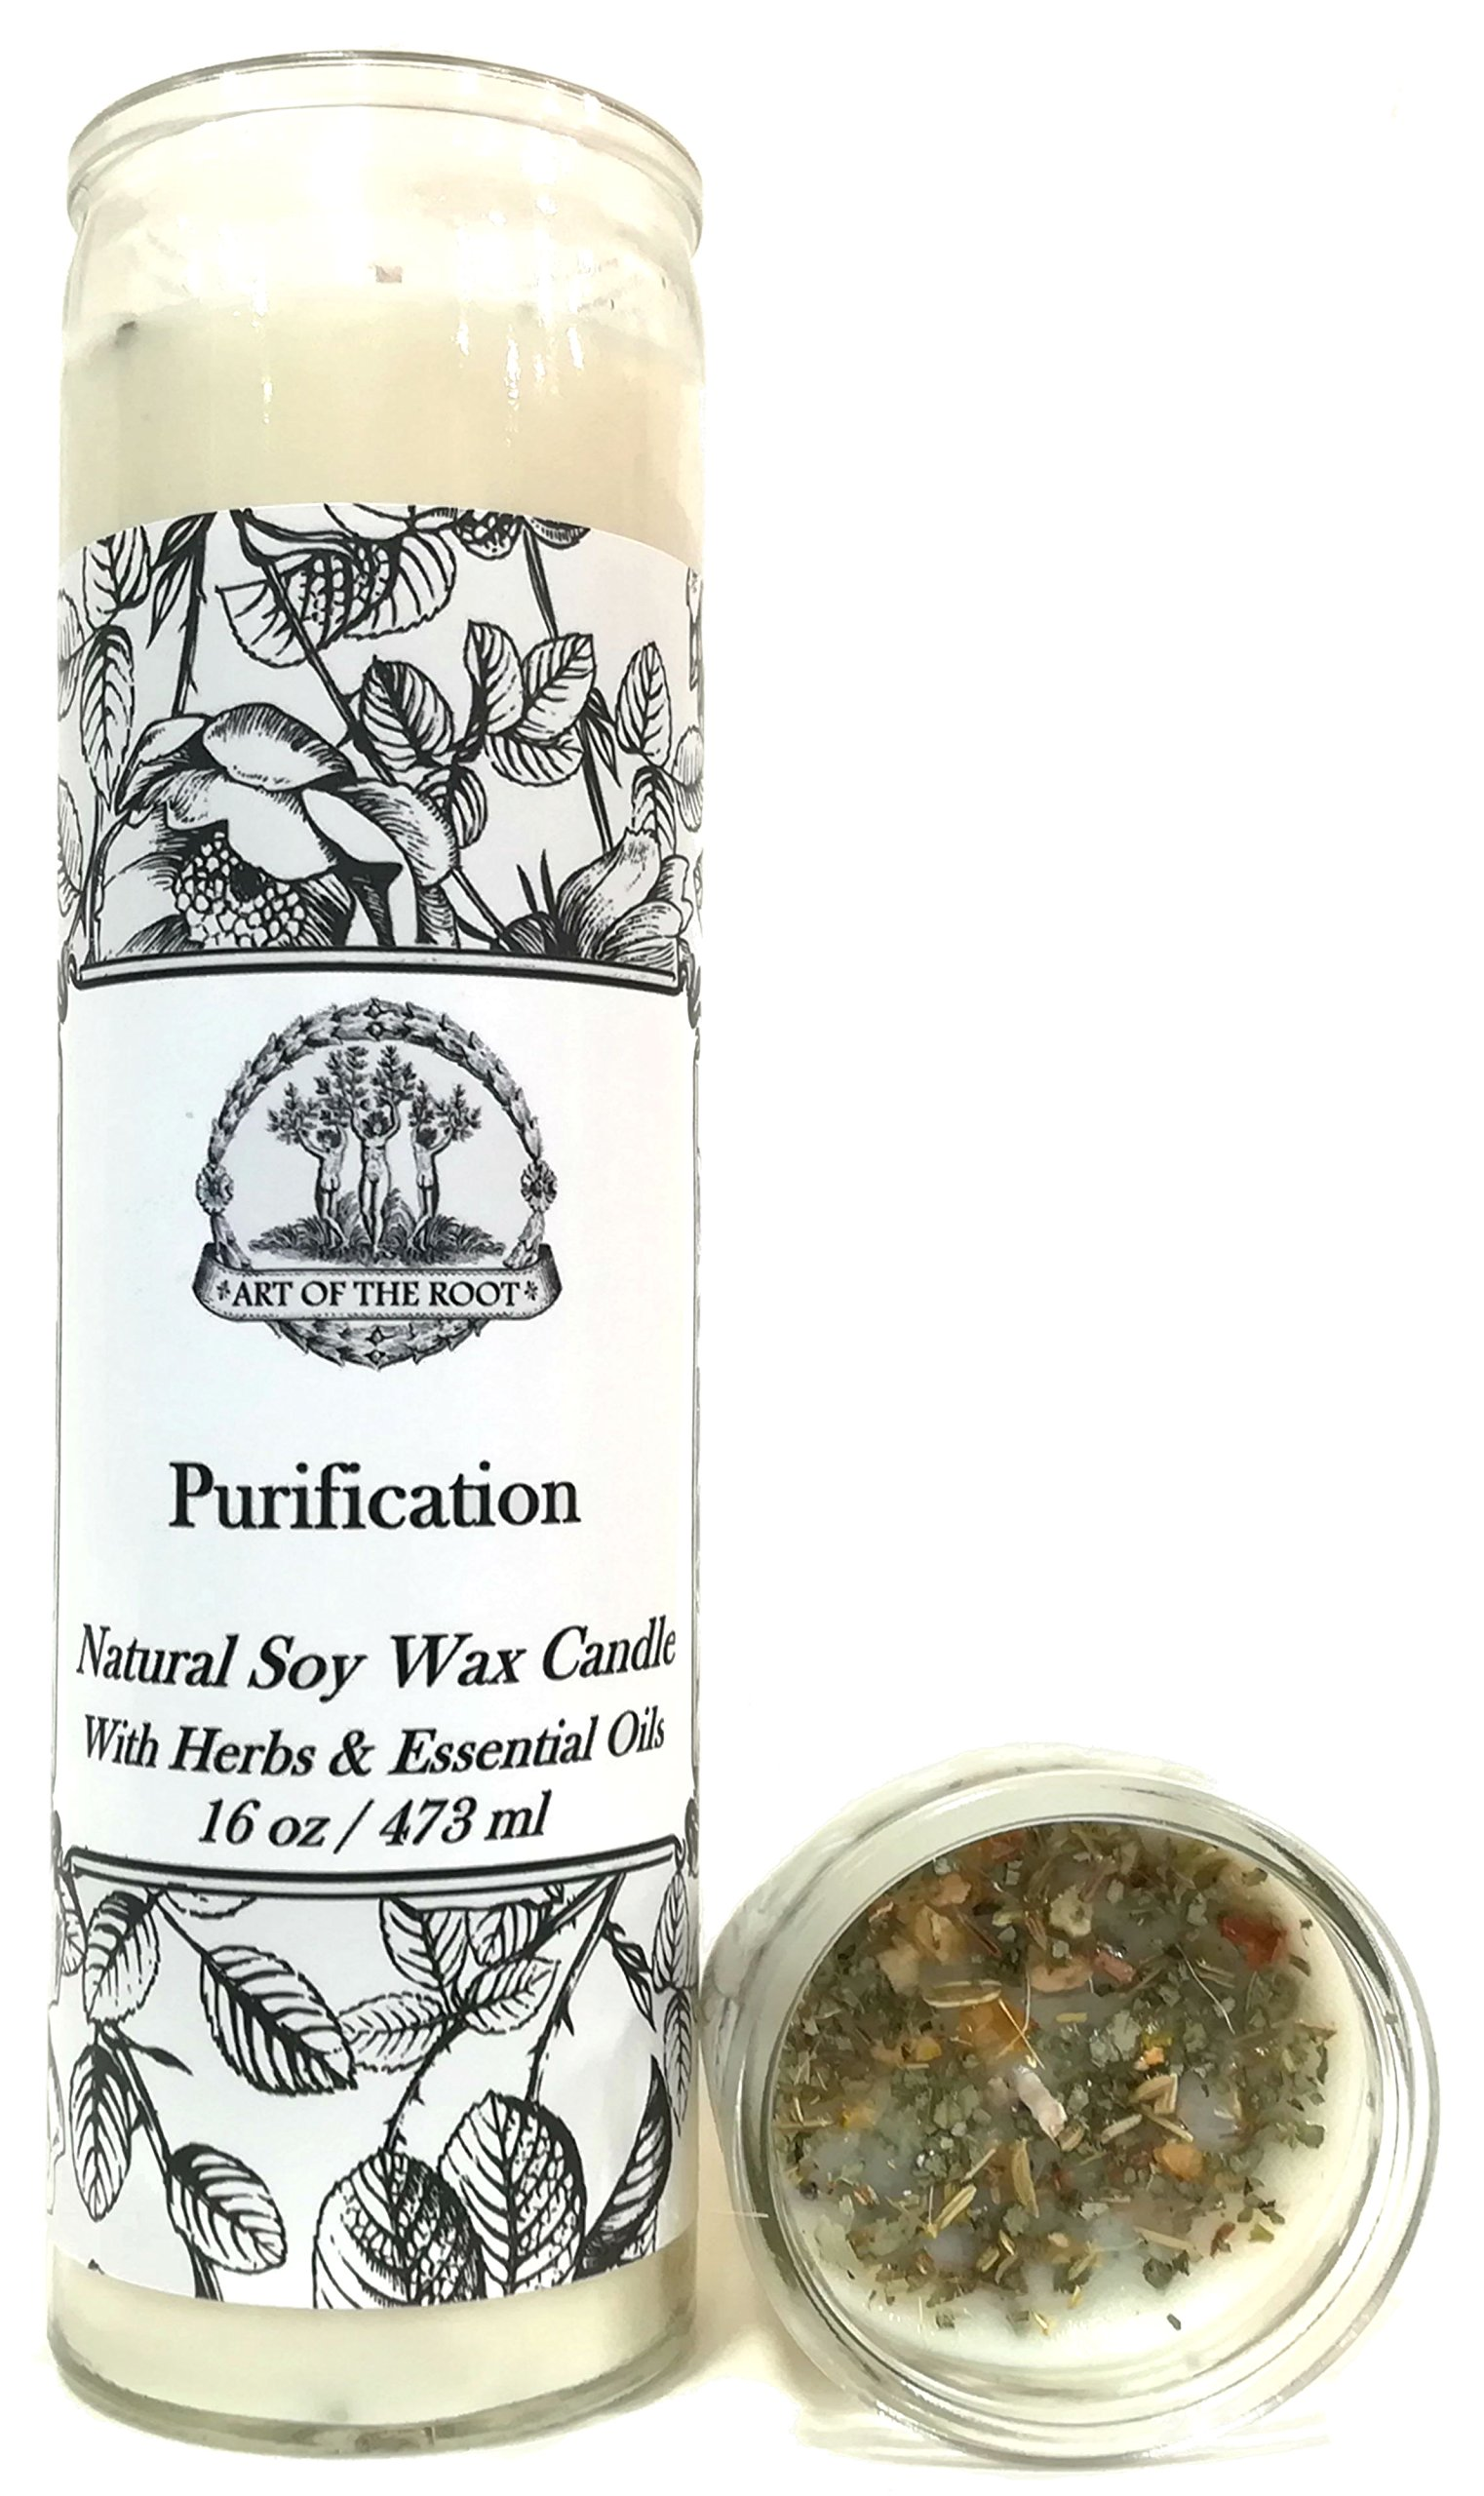 Purification 7 Day SOY Herbal & Scented Spell Candle for Negativity & Cleansing Wiccan Pagan Conjure Hoodoo by Art of the Root